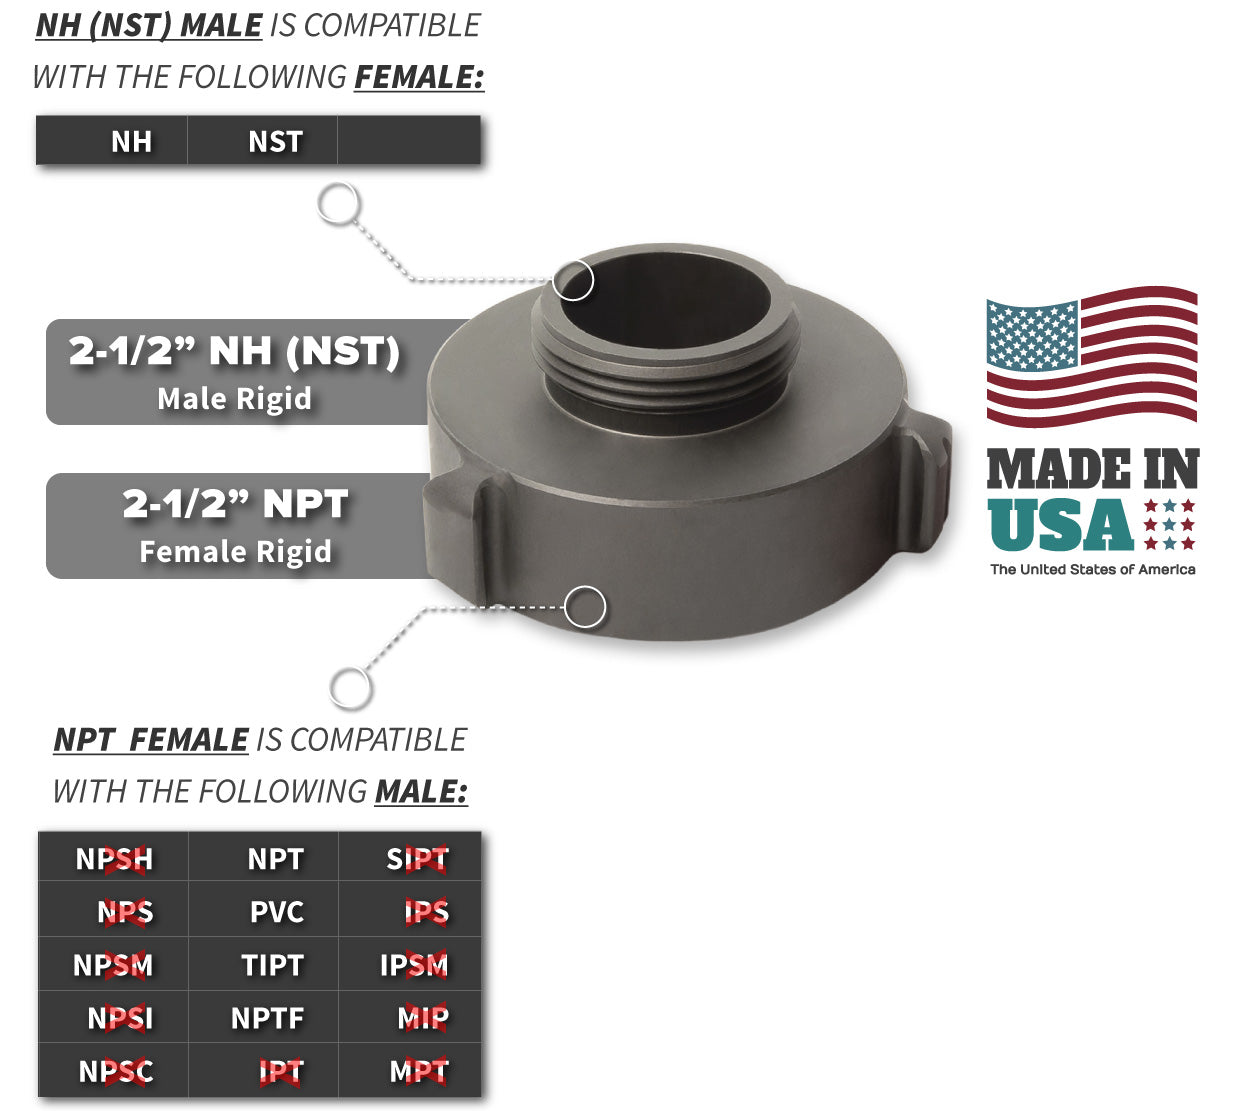 2.5 Inch NPT Female x 2.5 Inch NH-NST Male Compatibility Thread Chart